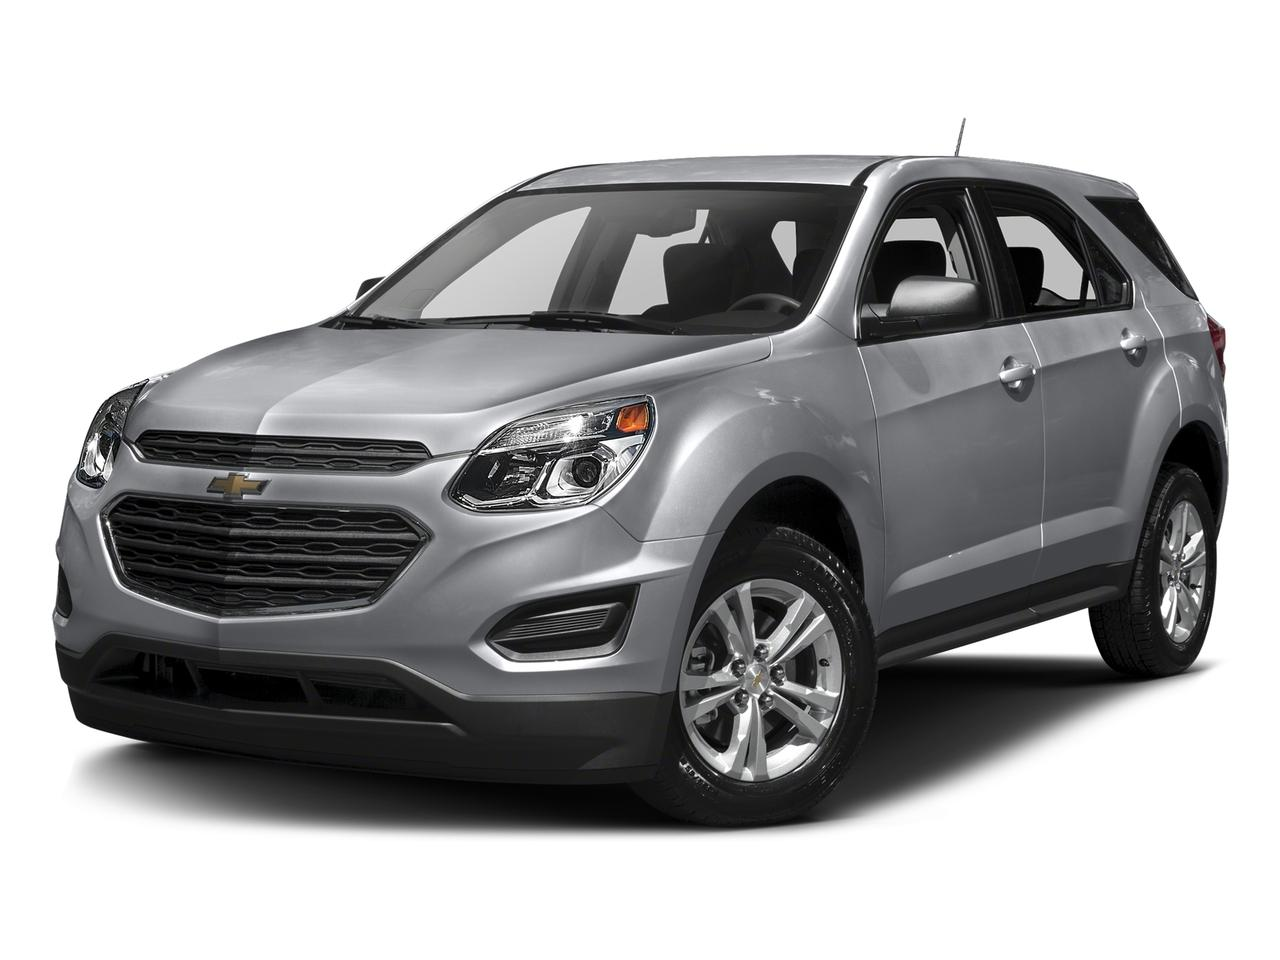 2017 Chevrolet Equinox Vehicle Photo in Winnsboro, SC 29180